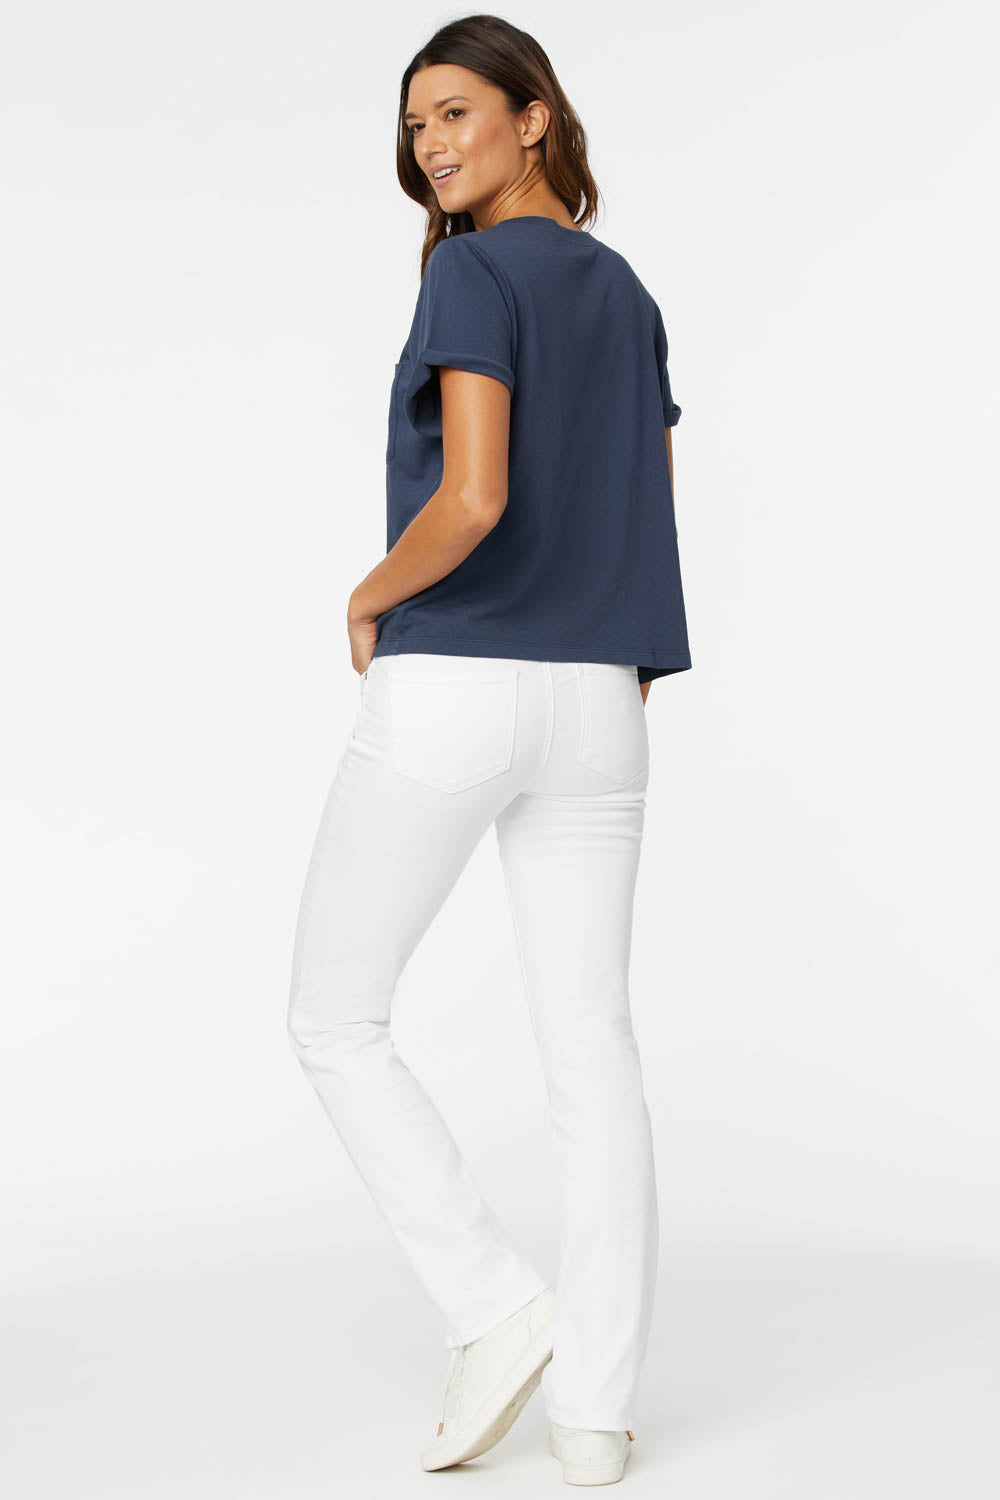 Cuffed Crewneck Pocket Tee - Oxford Navy